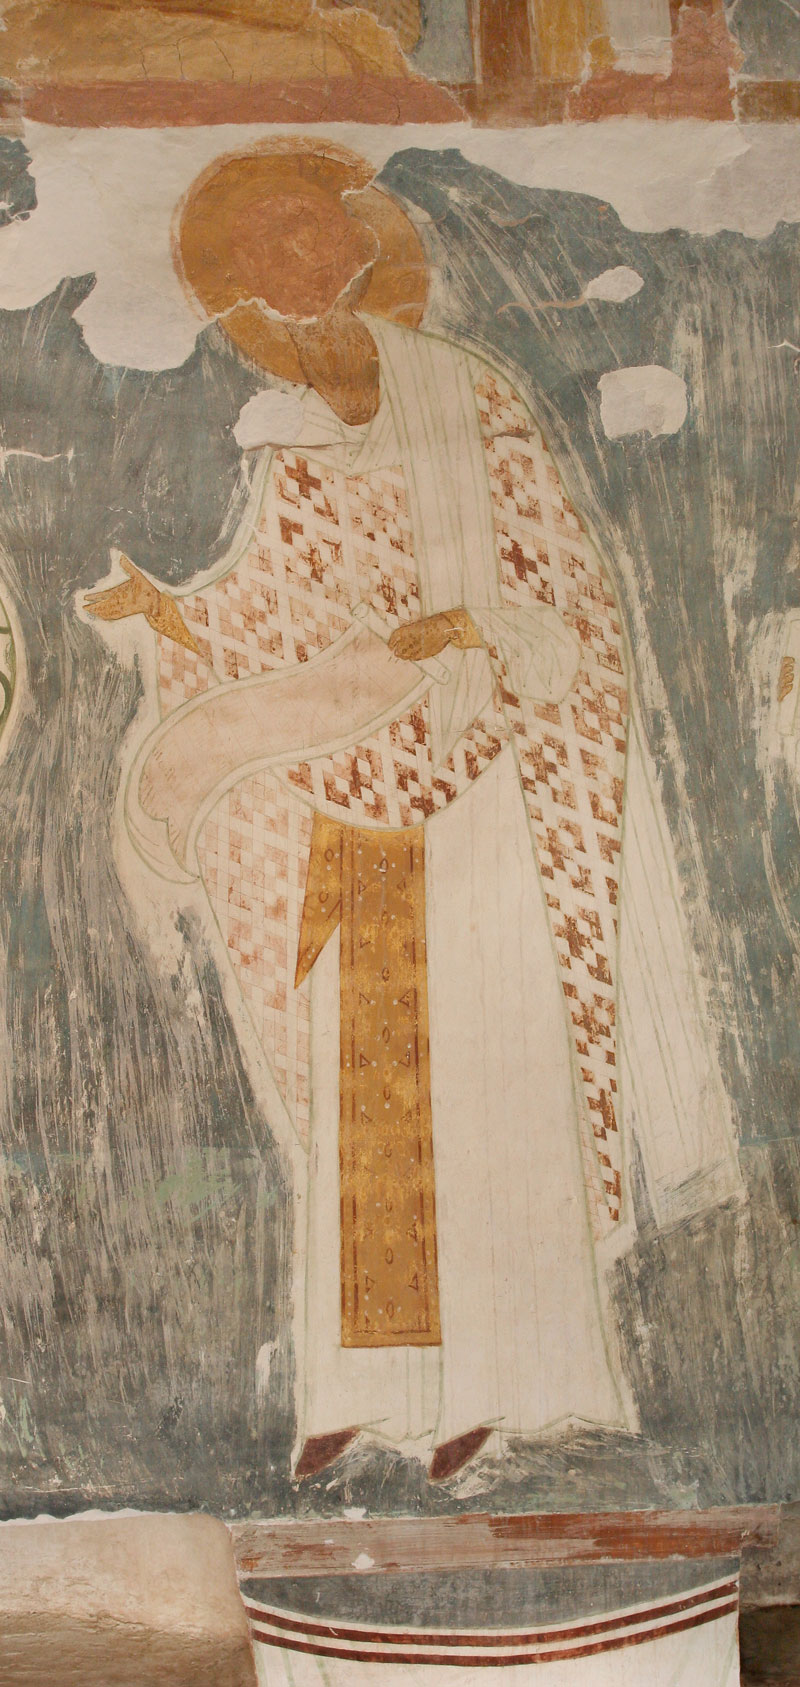 Dionisy's frescoes. Unknown High Priest from The Liturgy of Church Fathers